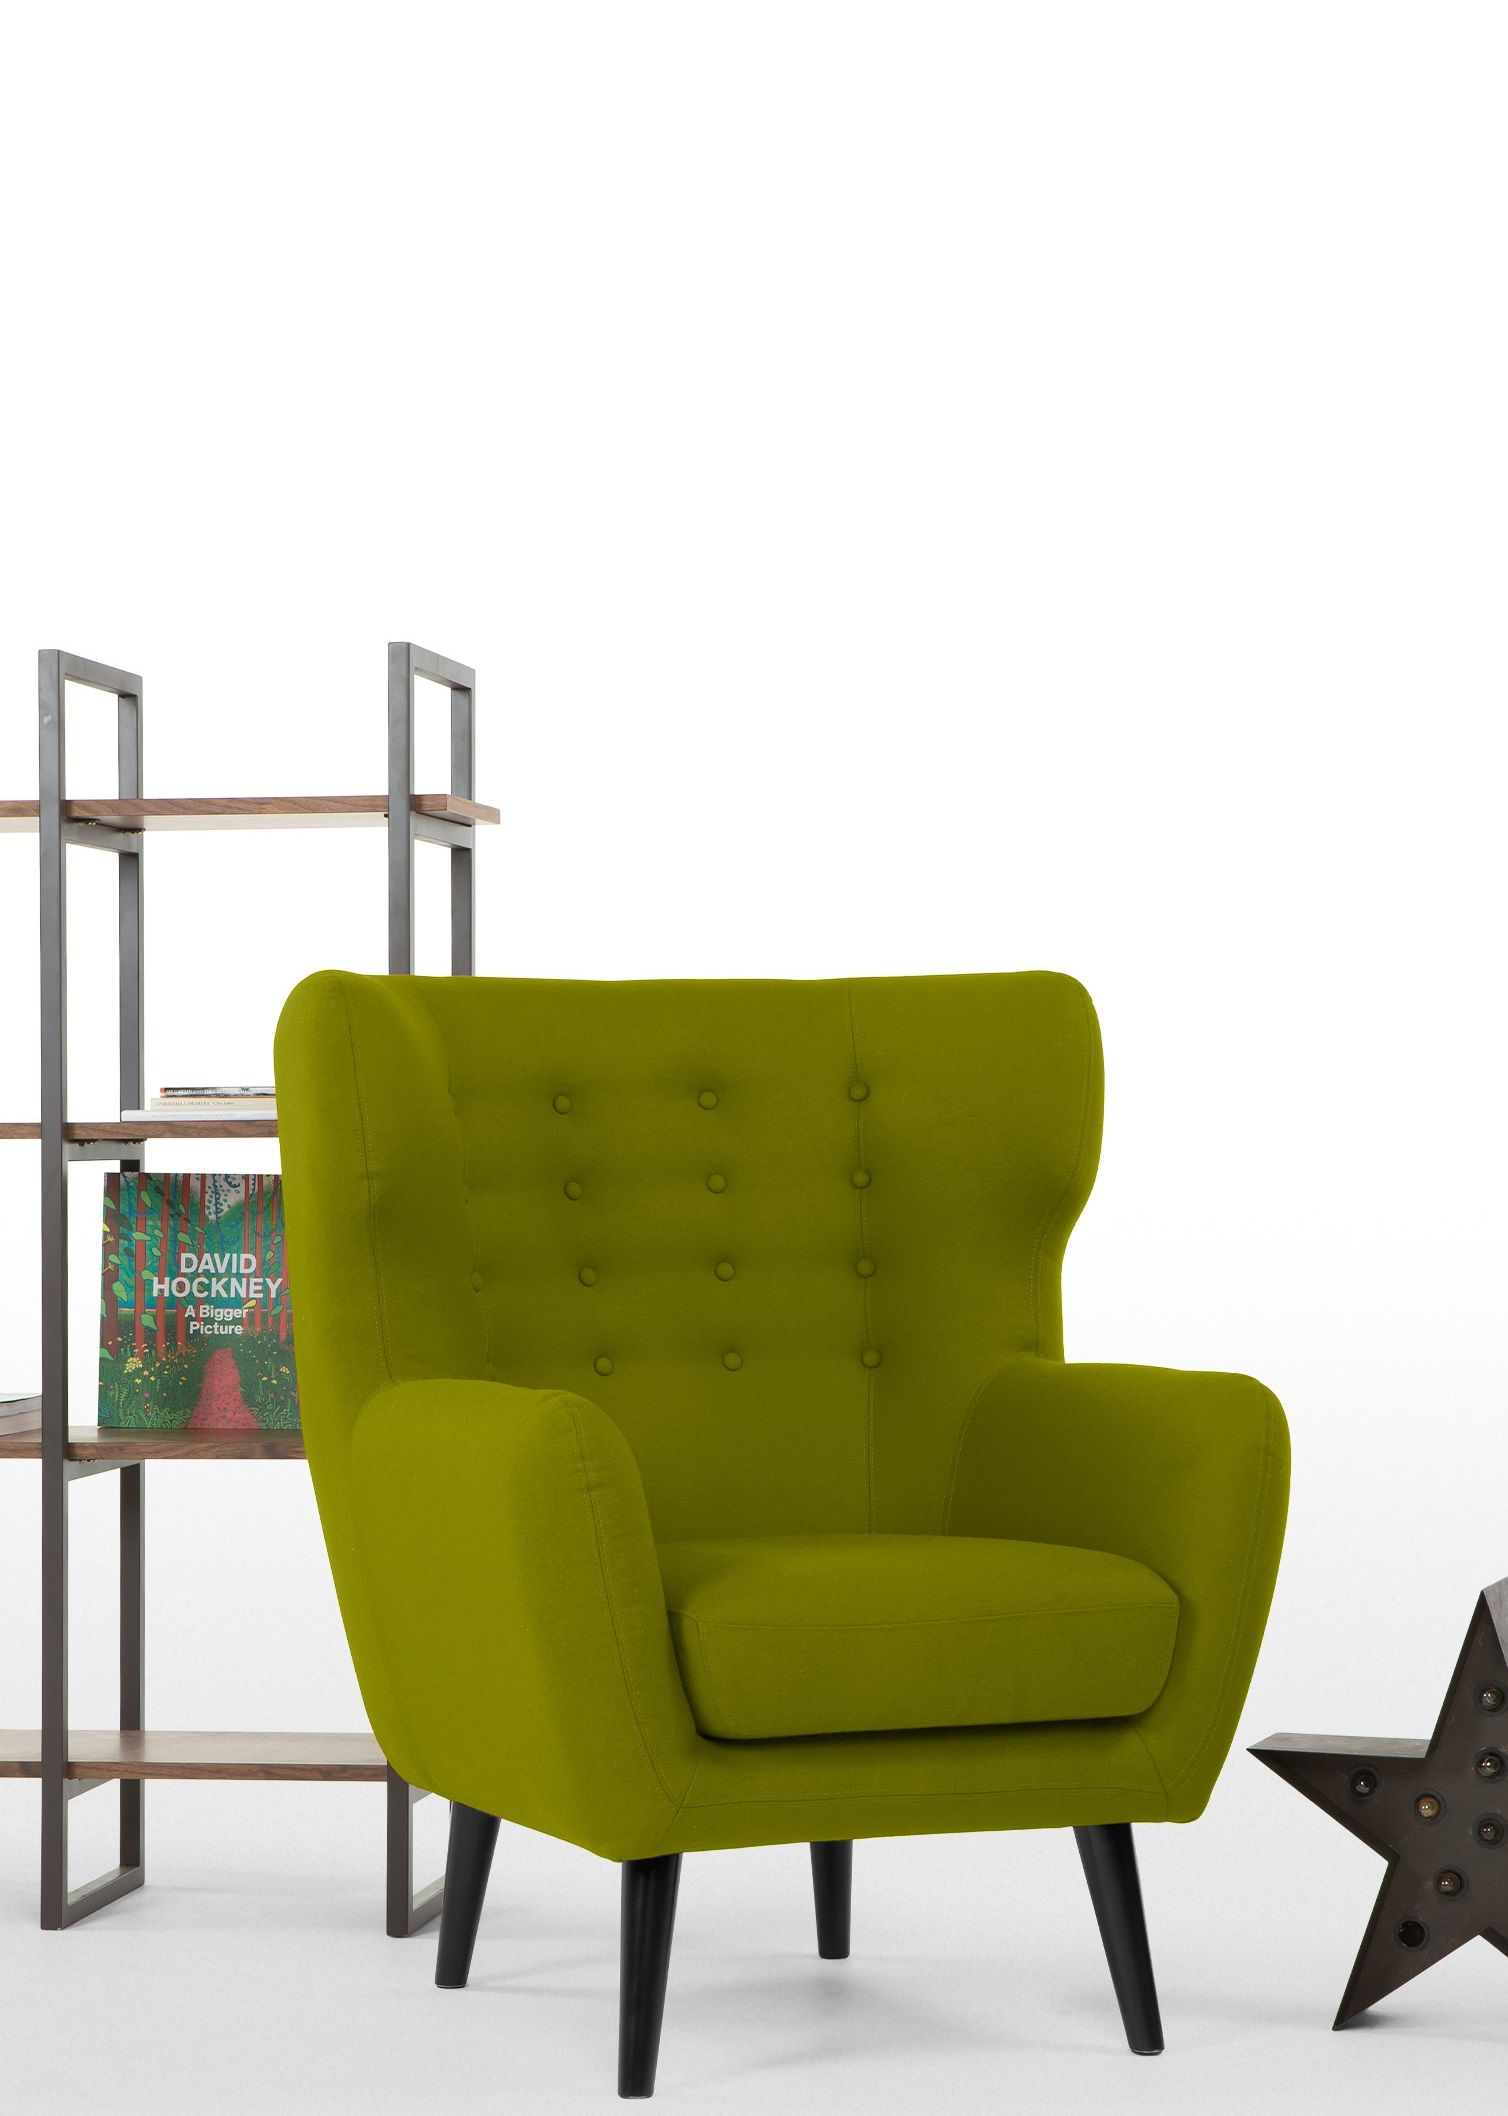 The Kubrick Wingback Armchair in Fern Green Retro 60s style